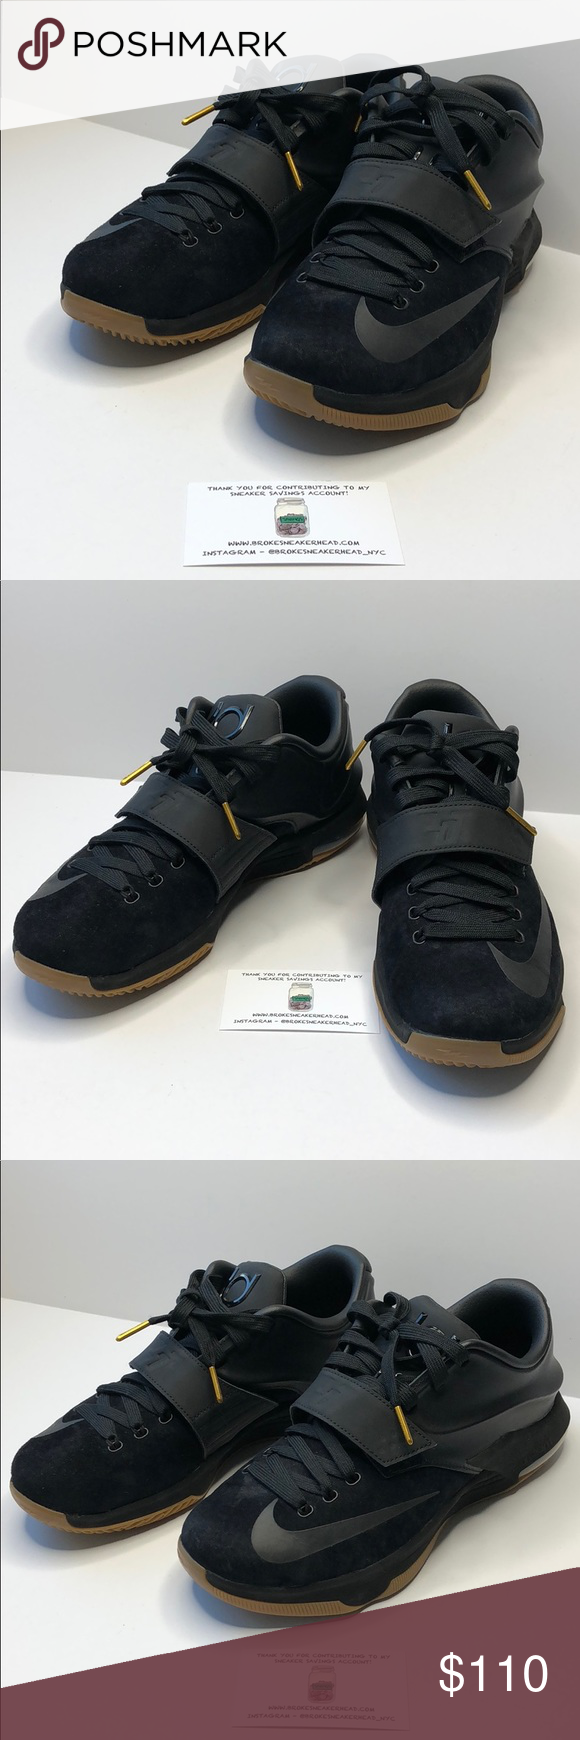 best website 09b0d 22519 ... reduced kd 7 ext suede qs black black released 2014 no box nike shoes  sneakers c460b